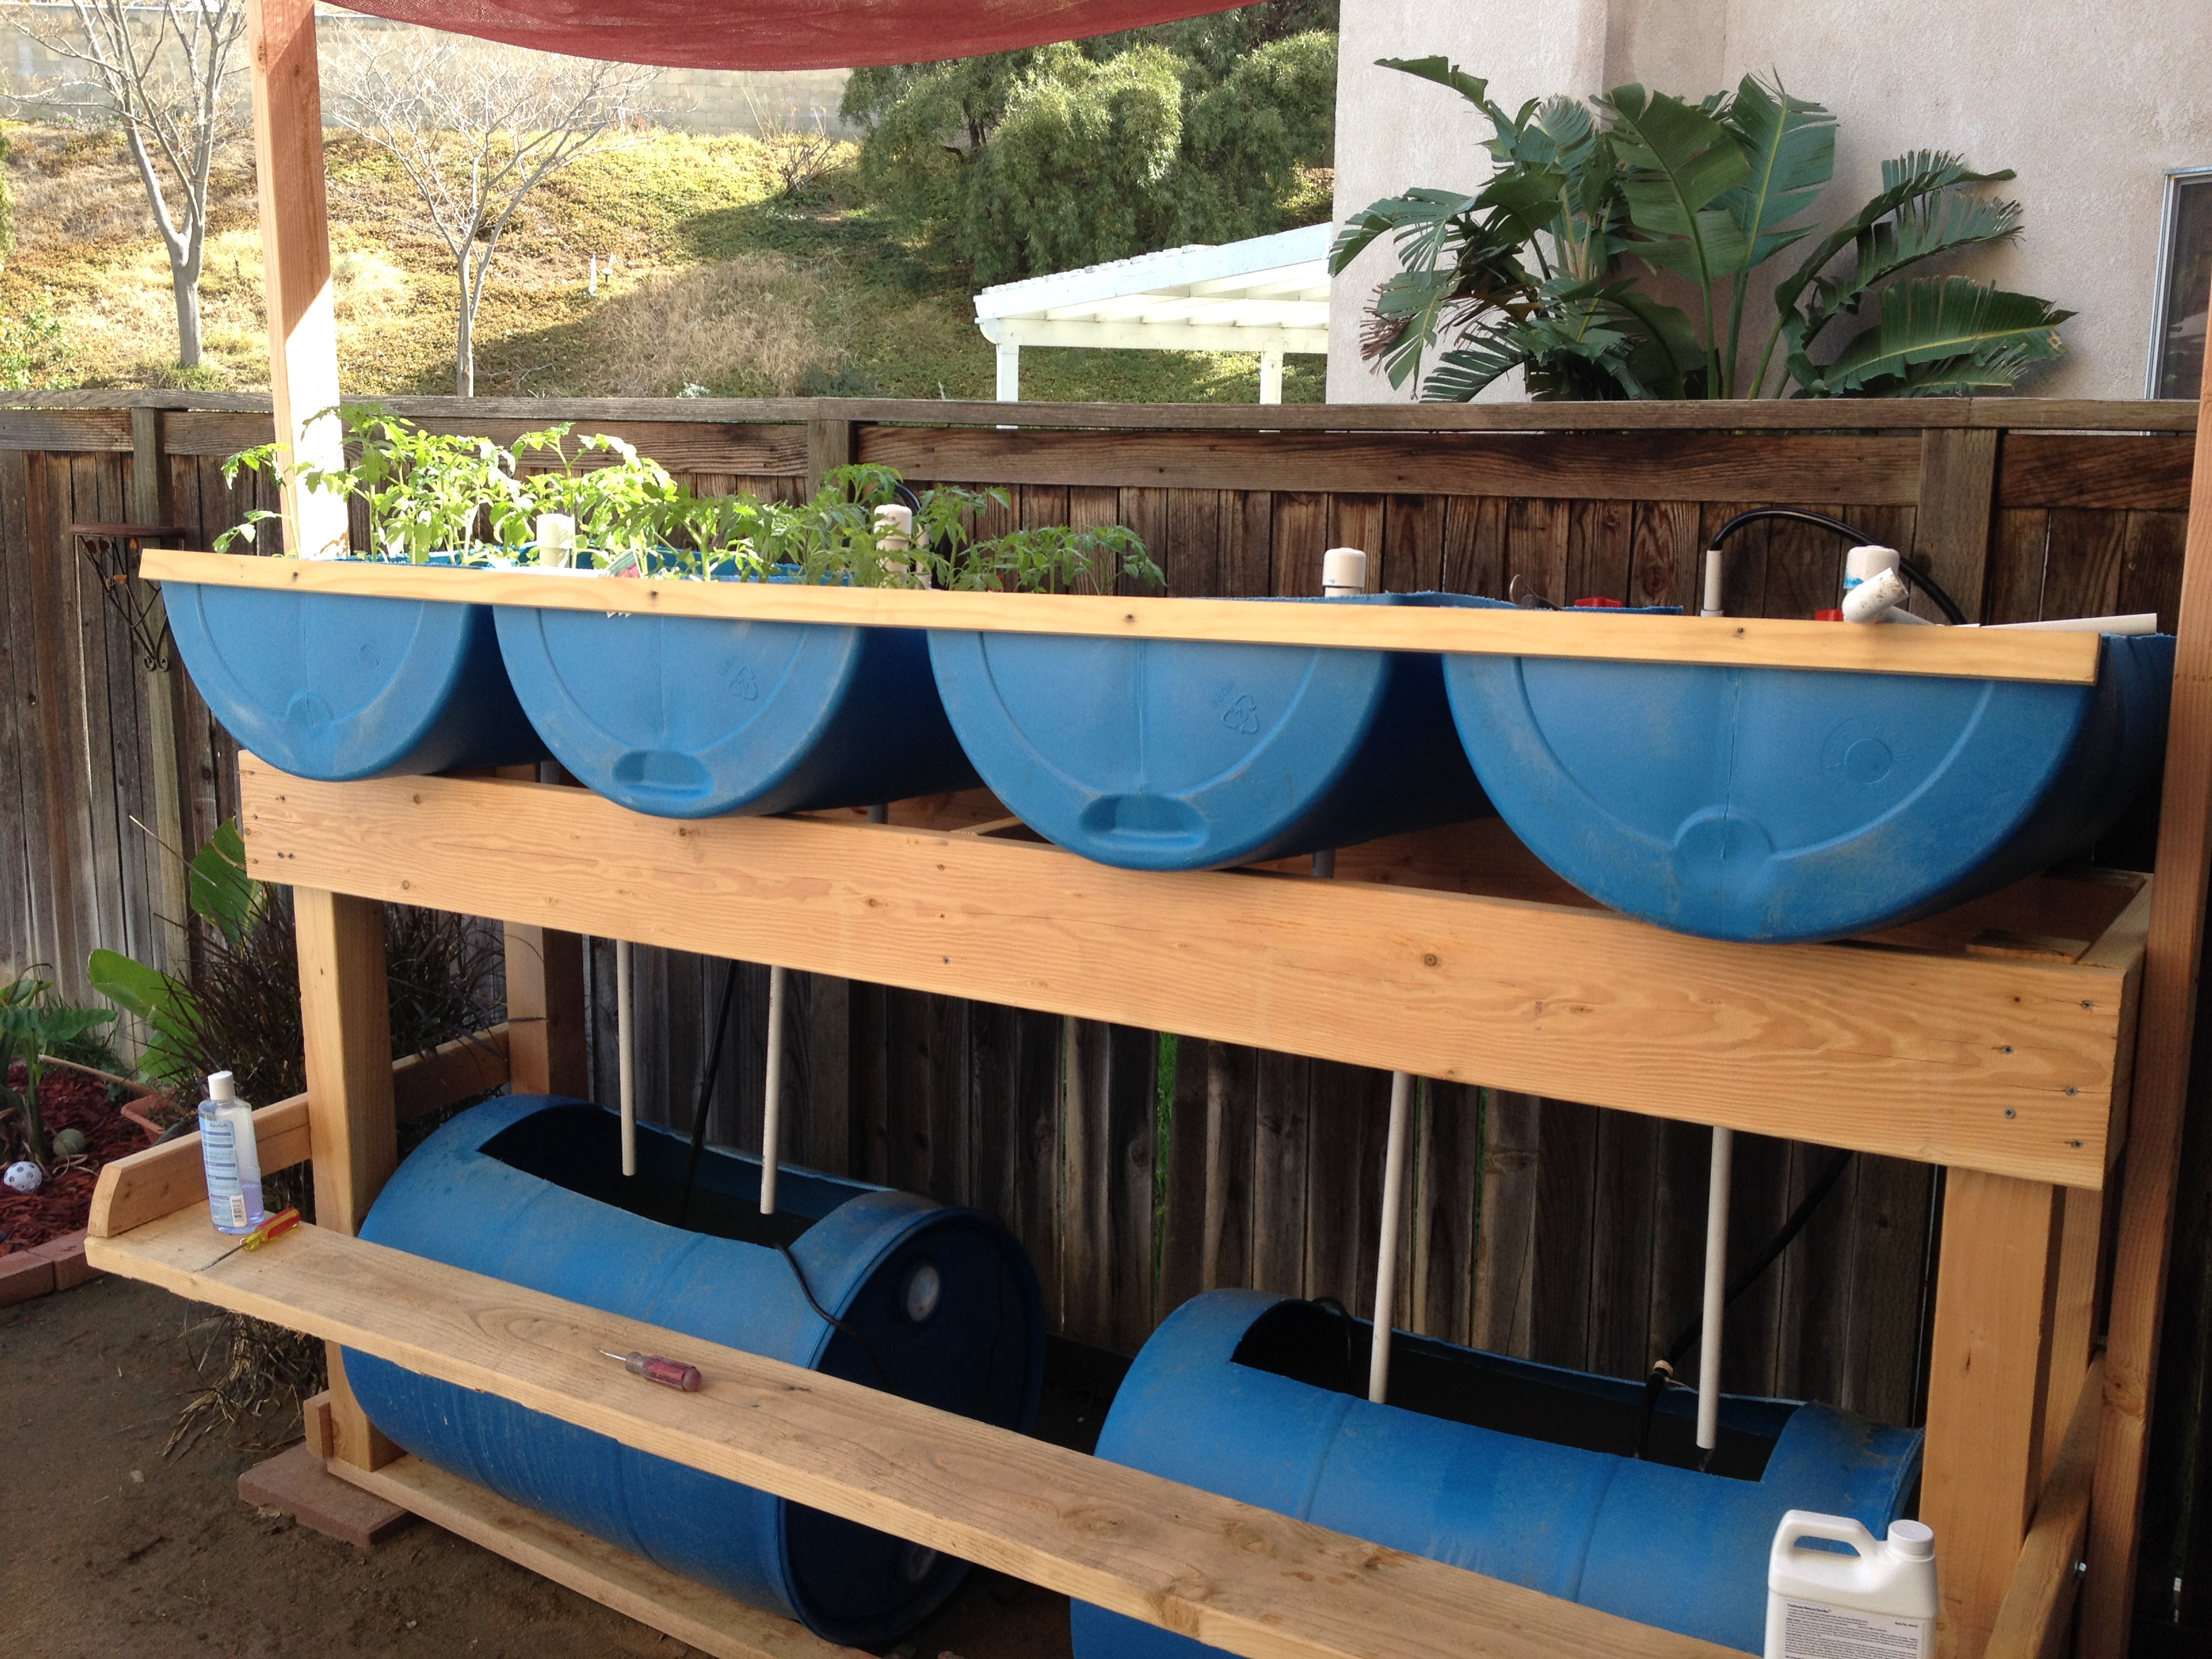 Ana white aquaponics garden diy projects solutioingenieria Image collections